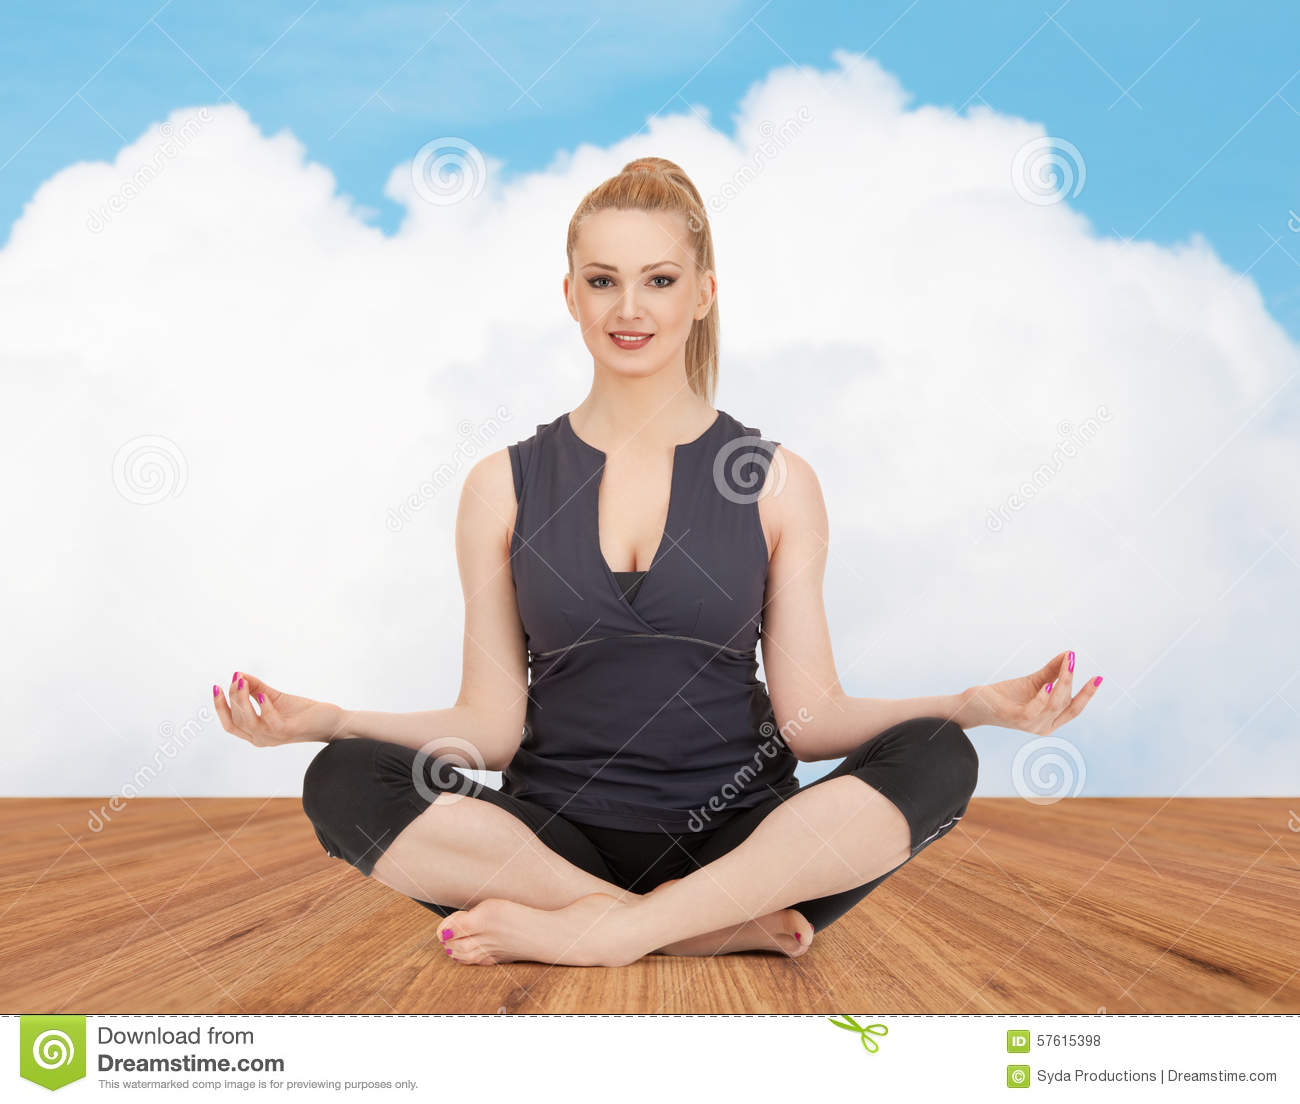 Lotus pose is a guarantee of health 50